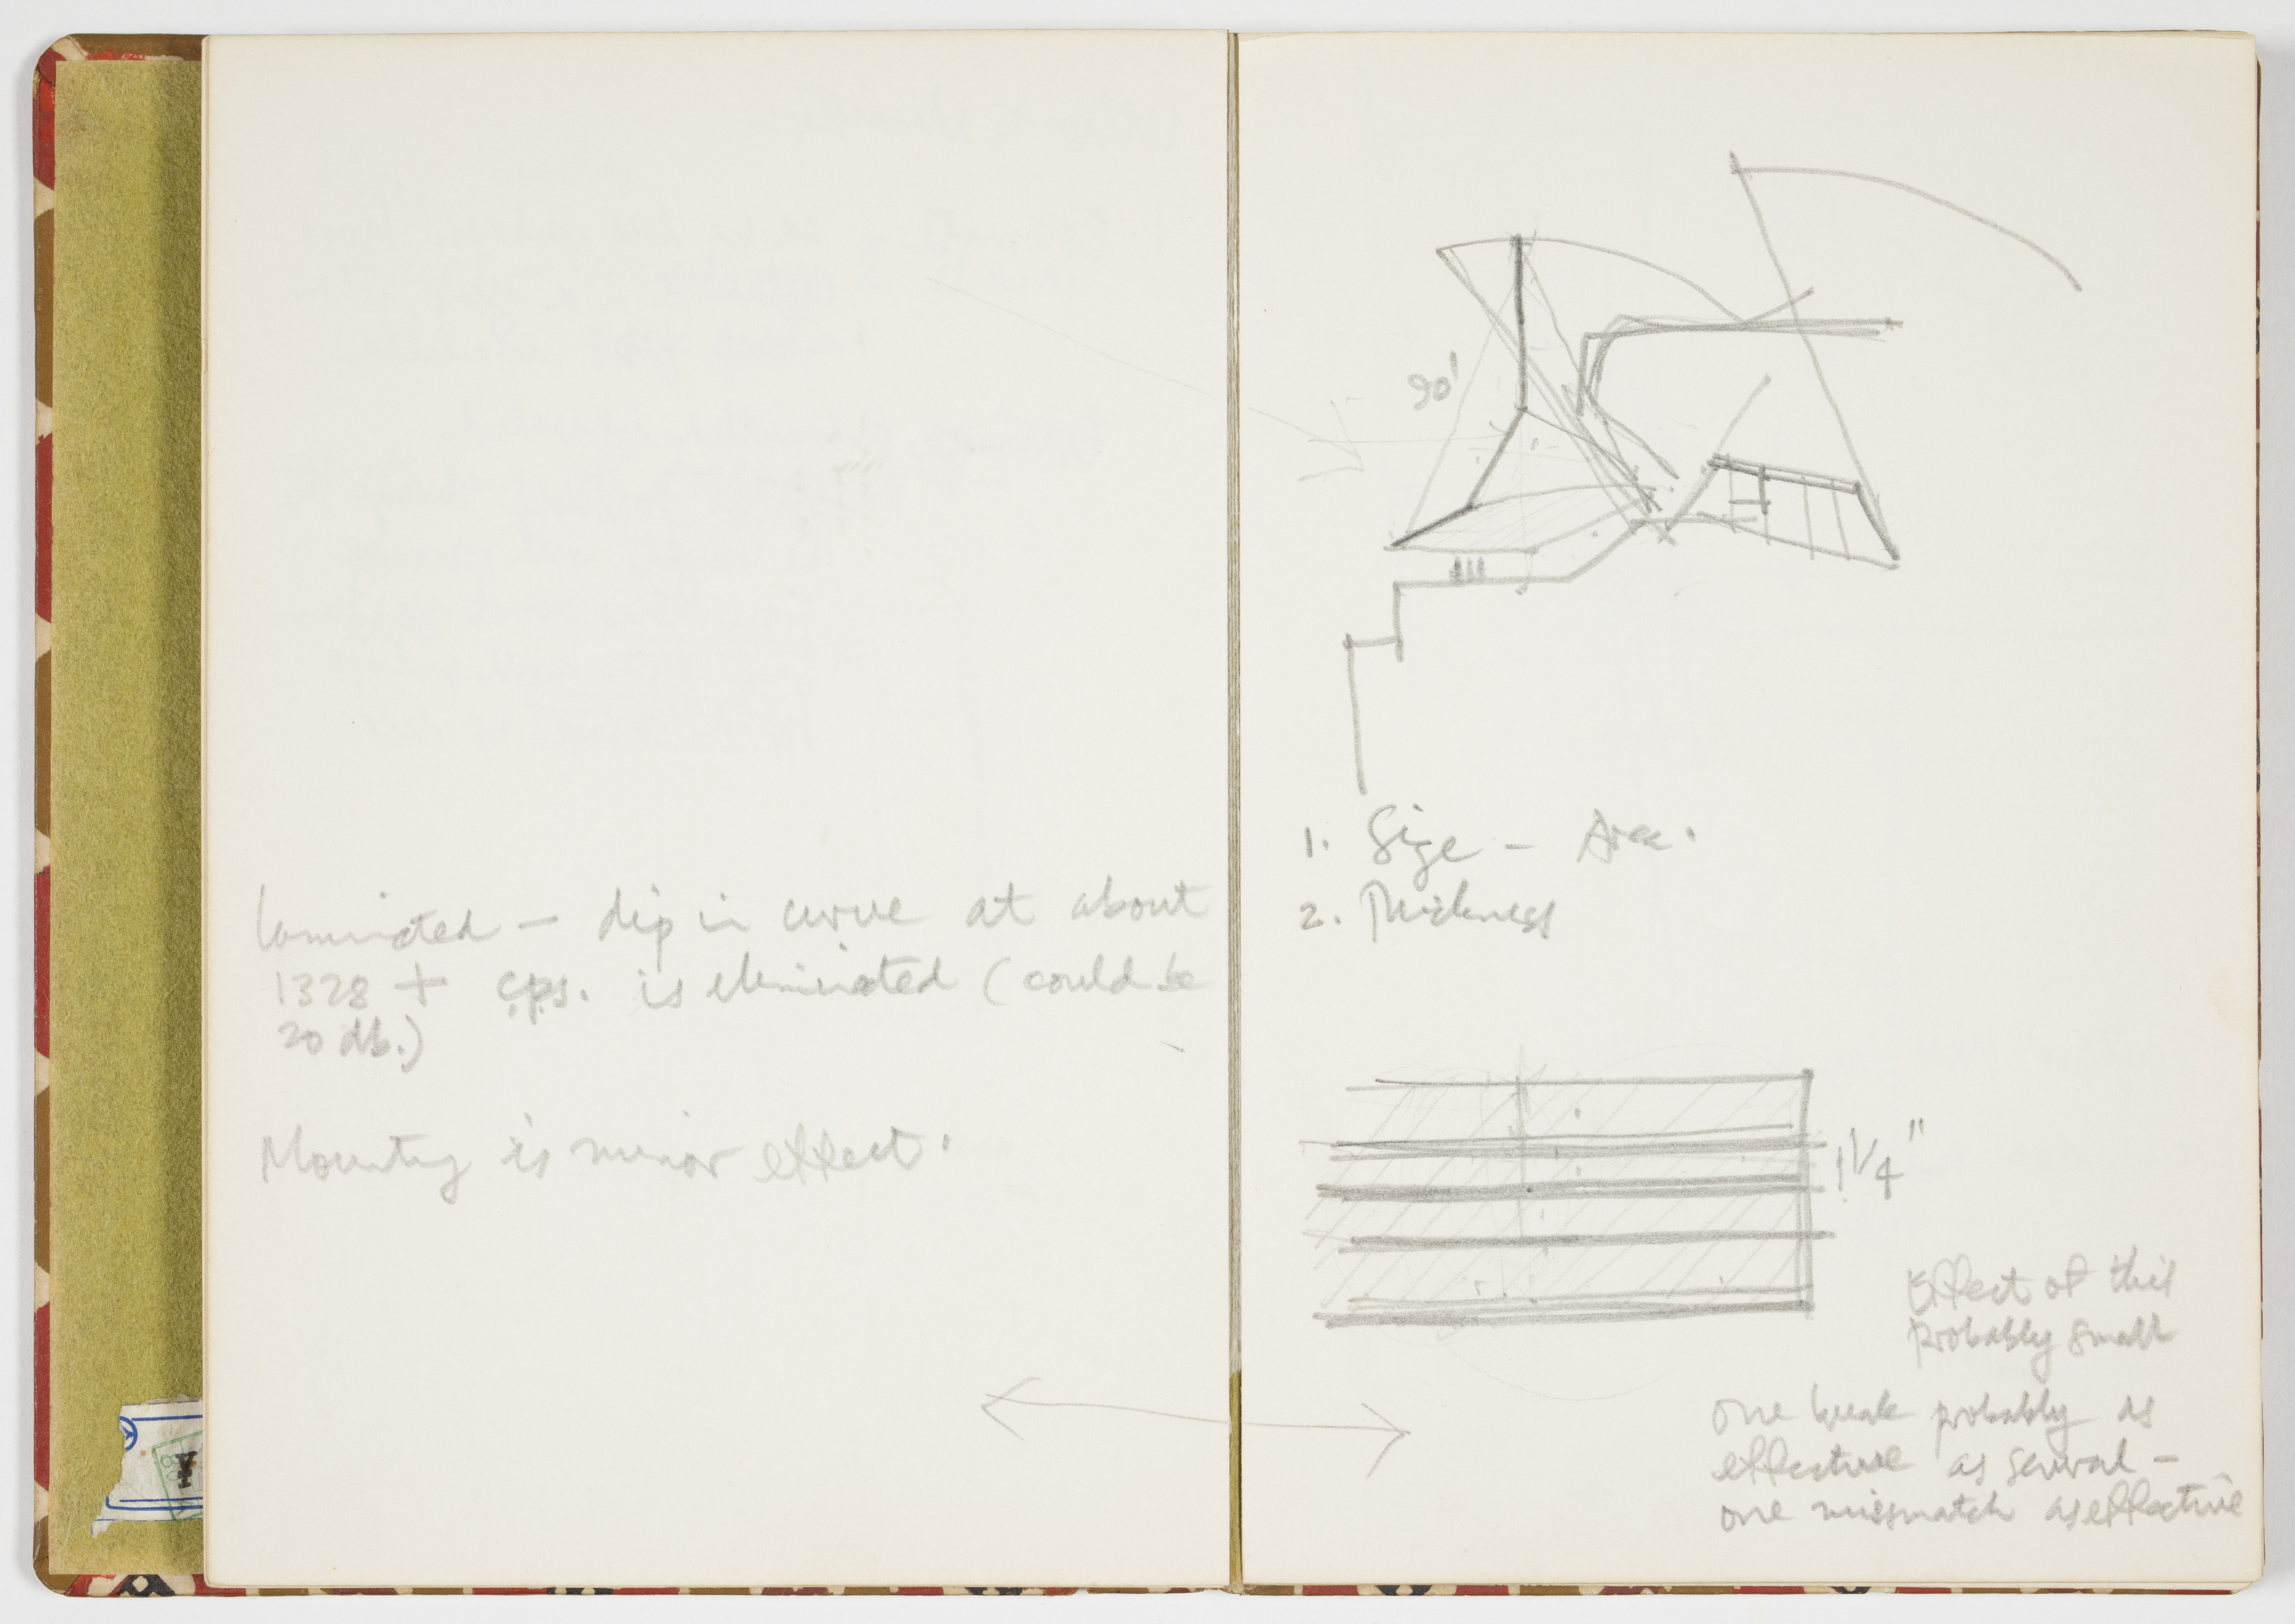 Pencil sketches in an open notebook showing a profile of two of the arches of the Sydney Opera House, surrounded by calculations.